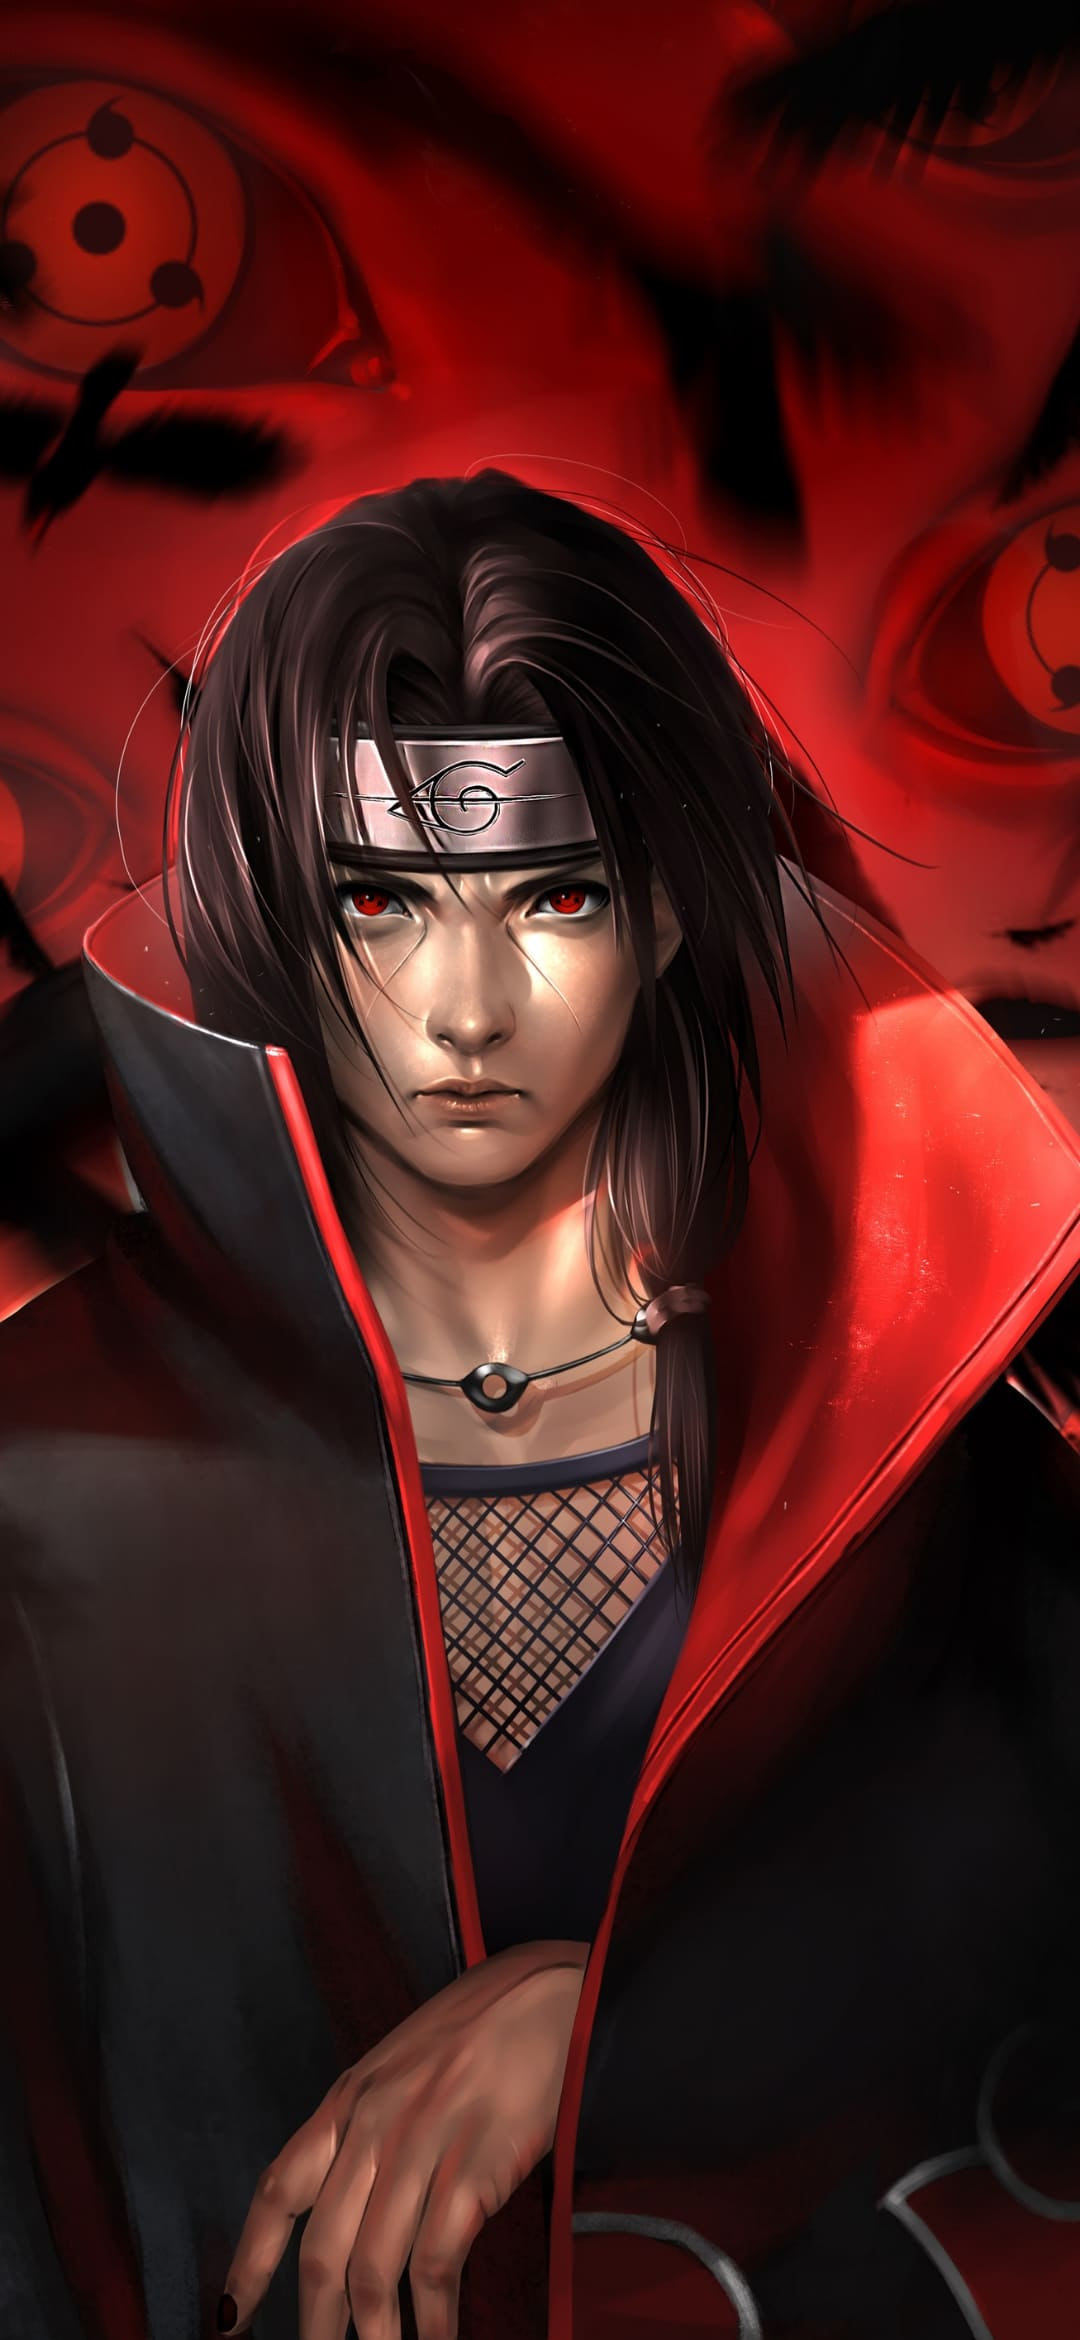 65 ᐈ Itachi Uchiha Wallpapers: Top 4k Itachi Uchiha ...